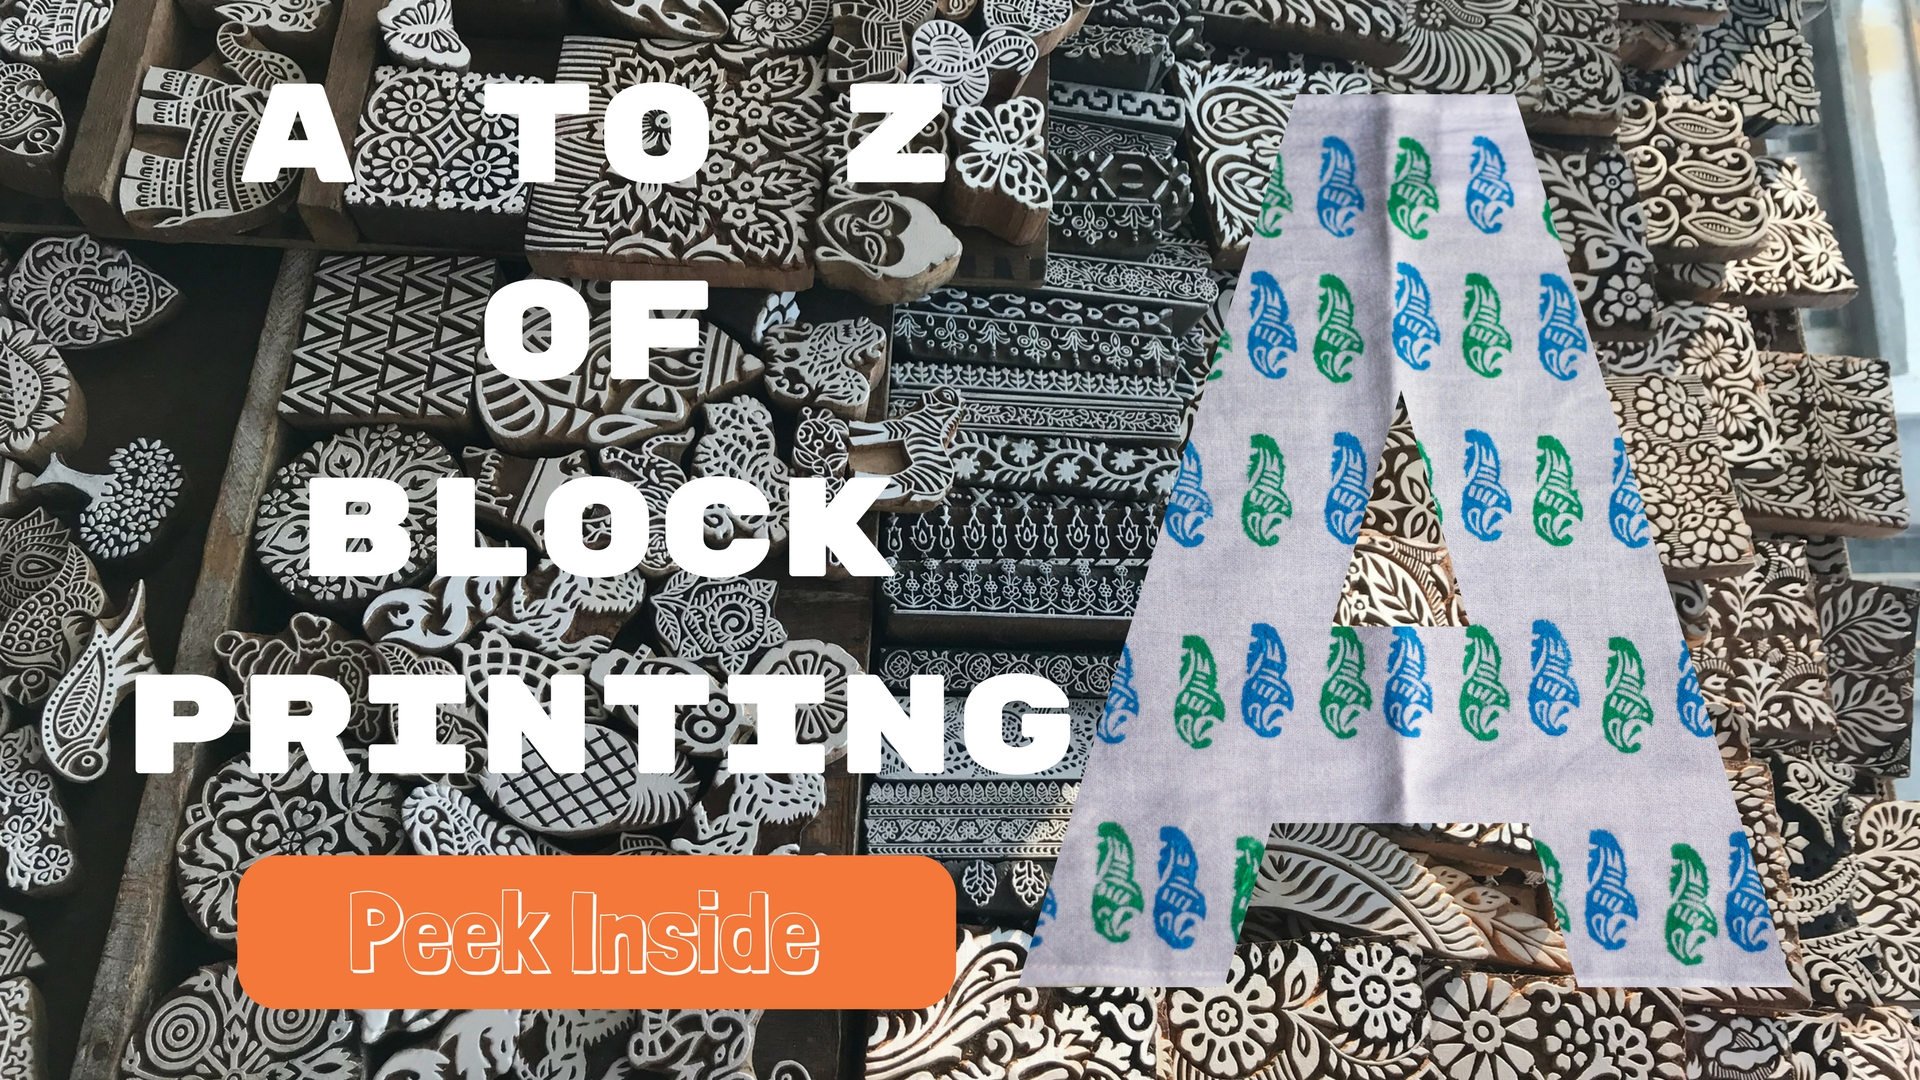 Block printing activities for kids